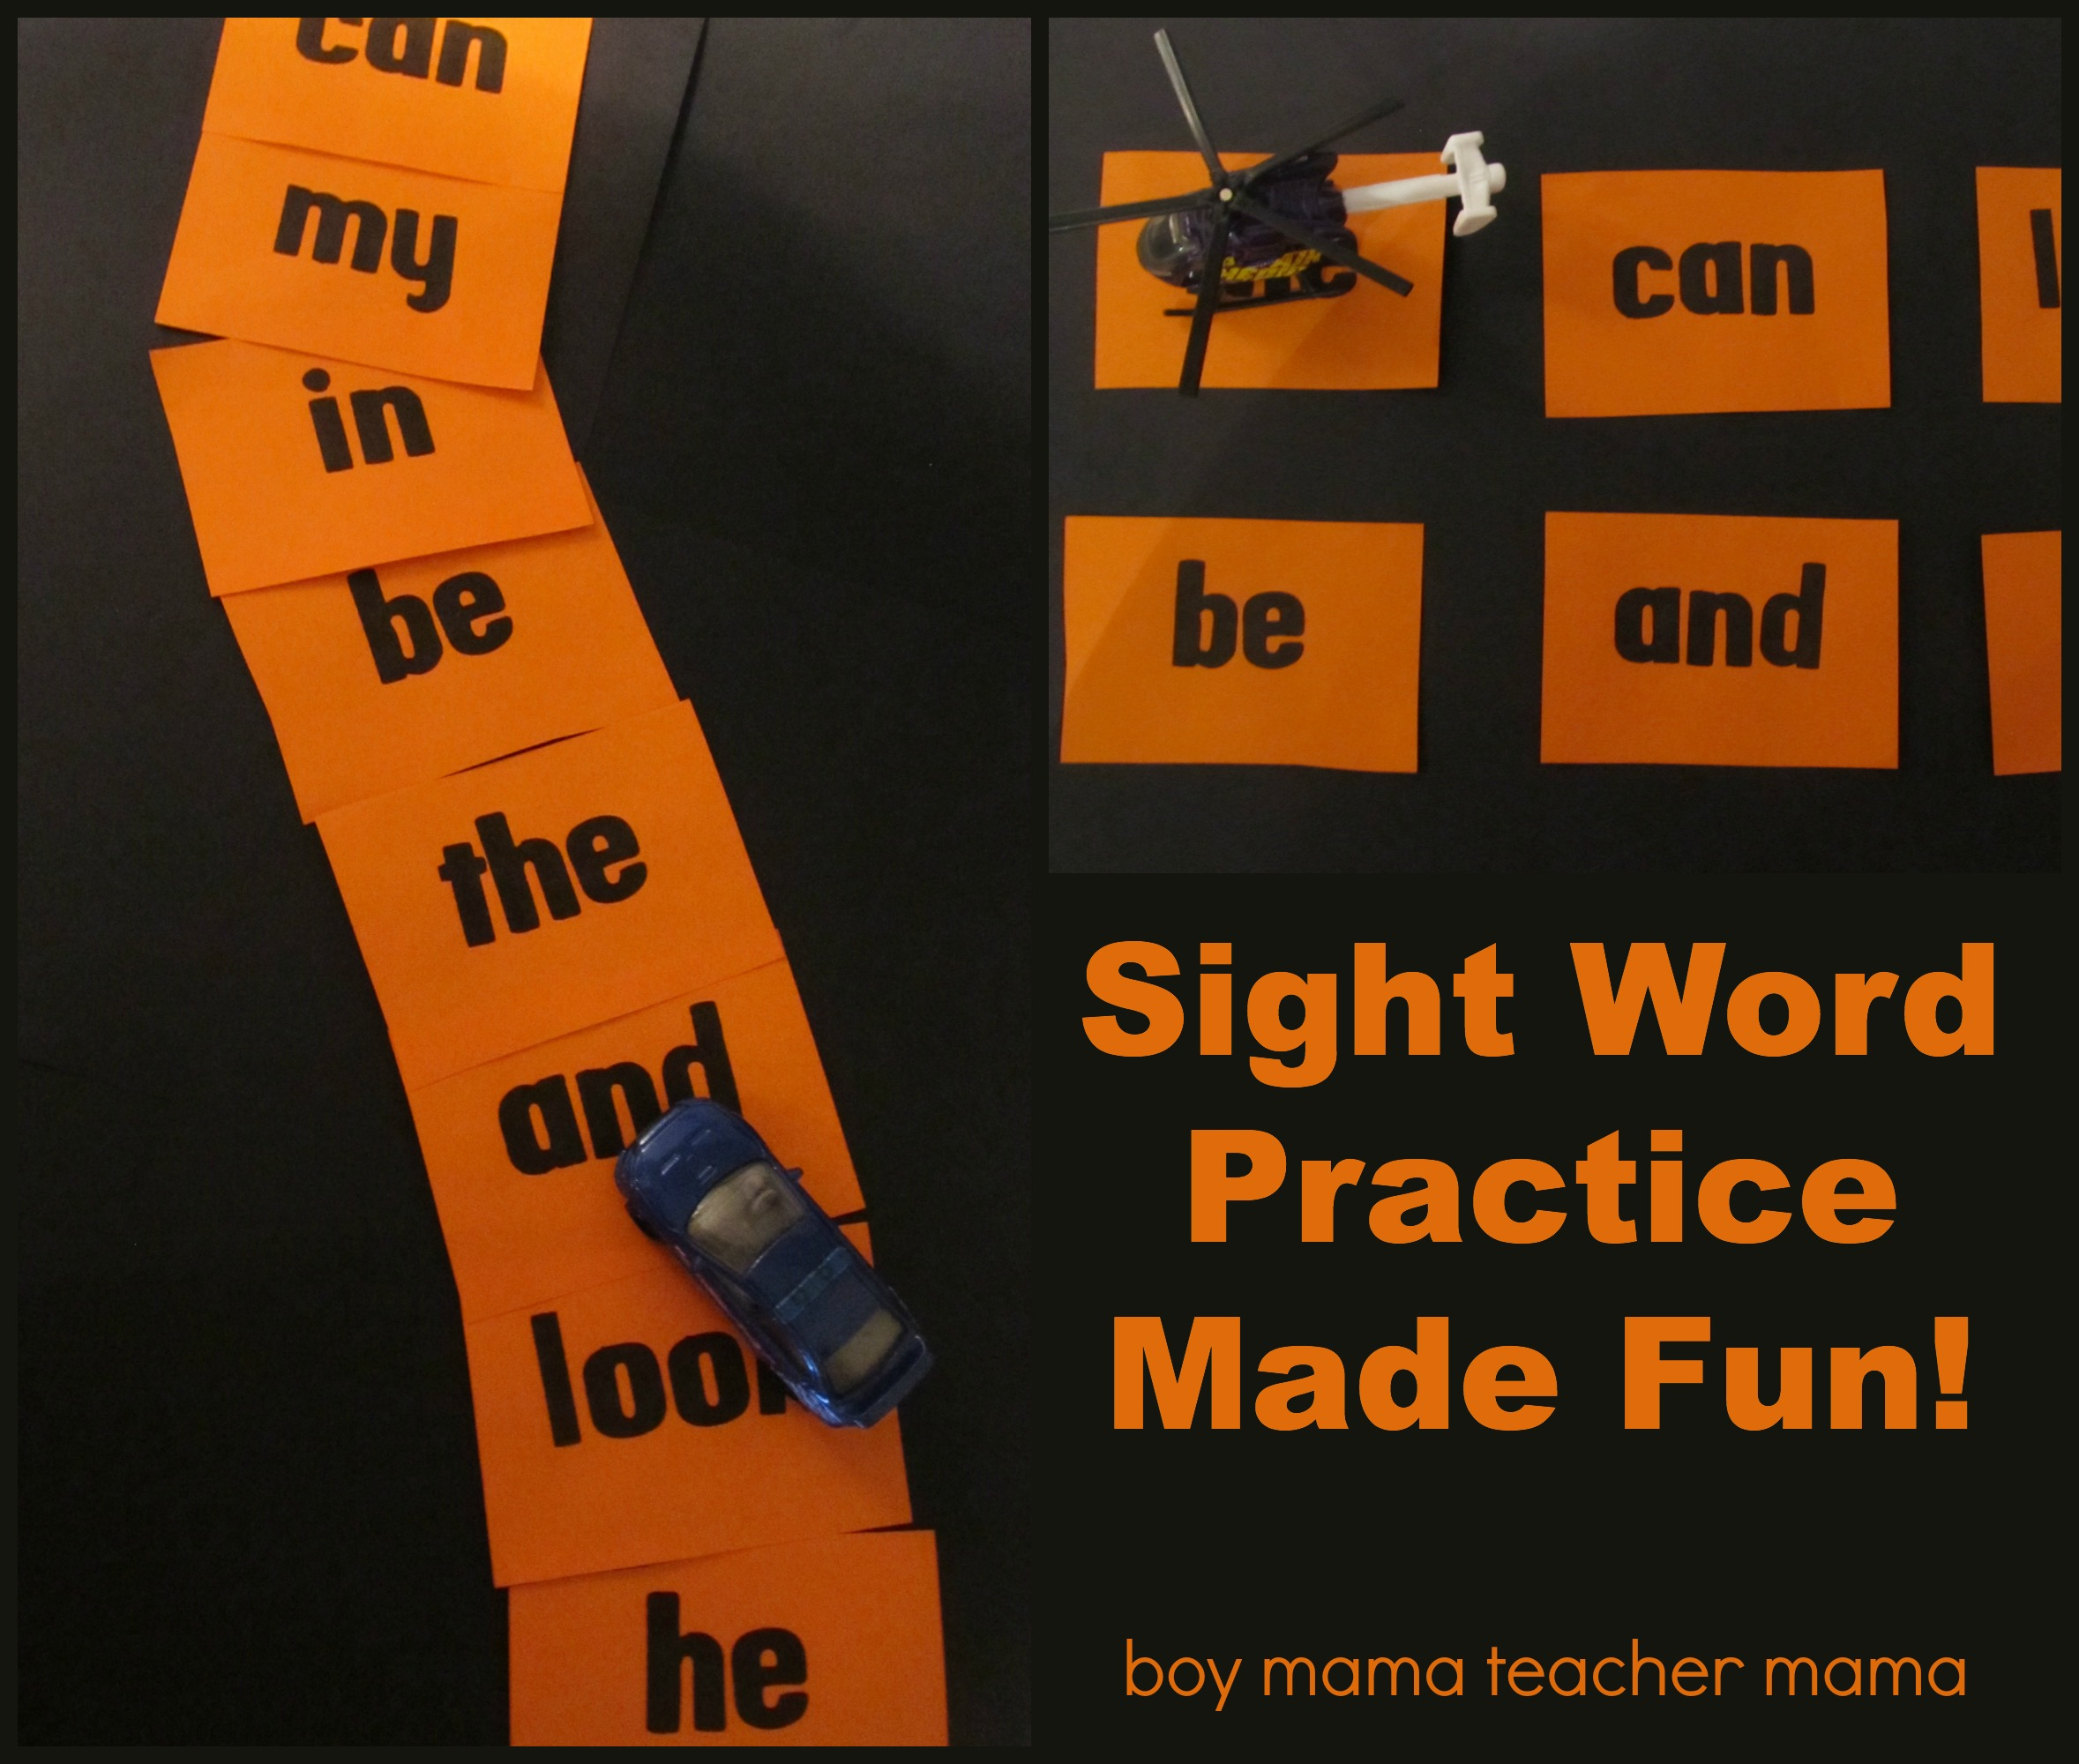 Teacher Mama: Sight Word Practice Made Fun